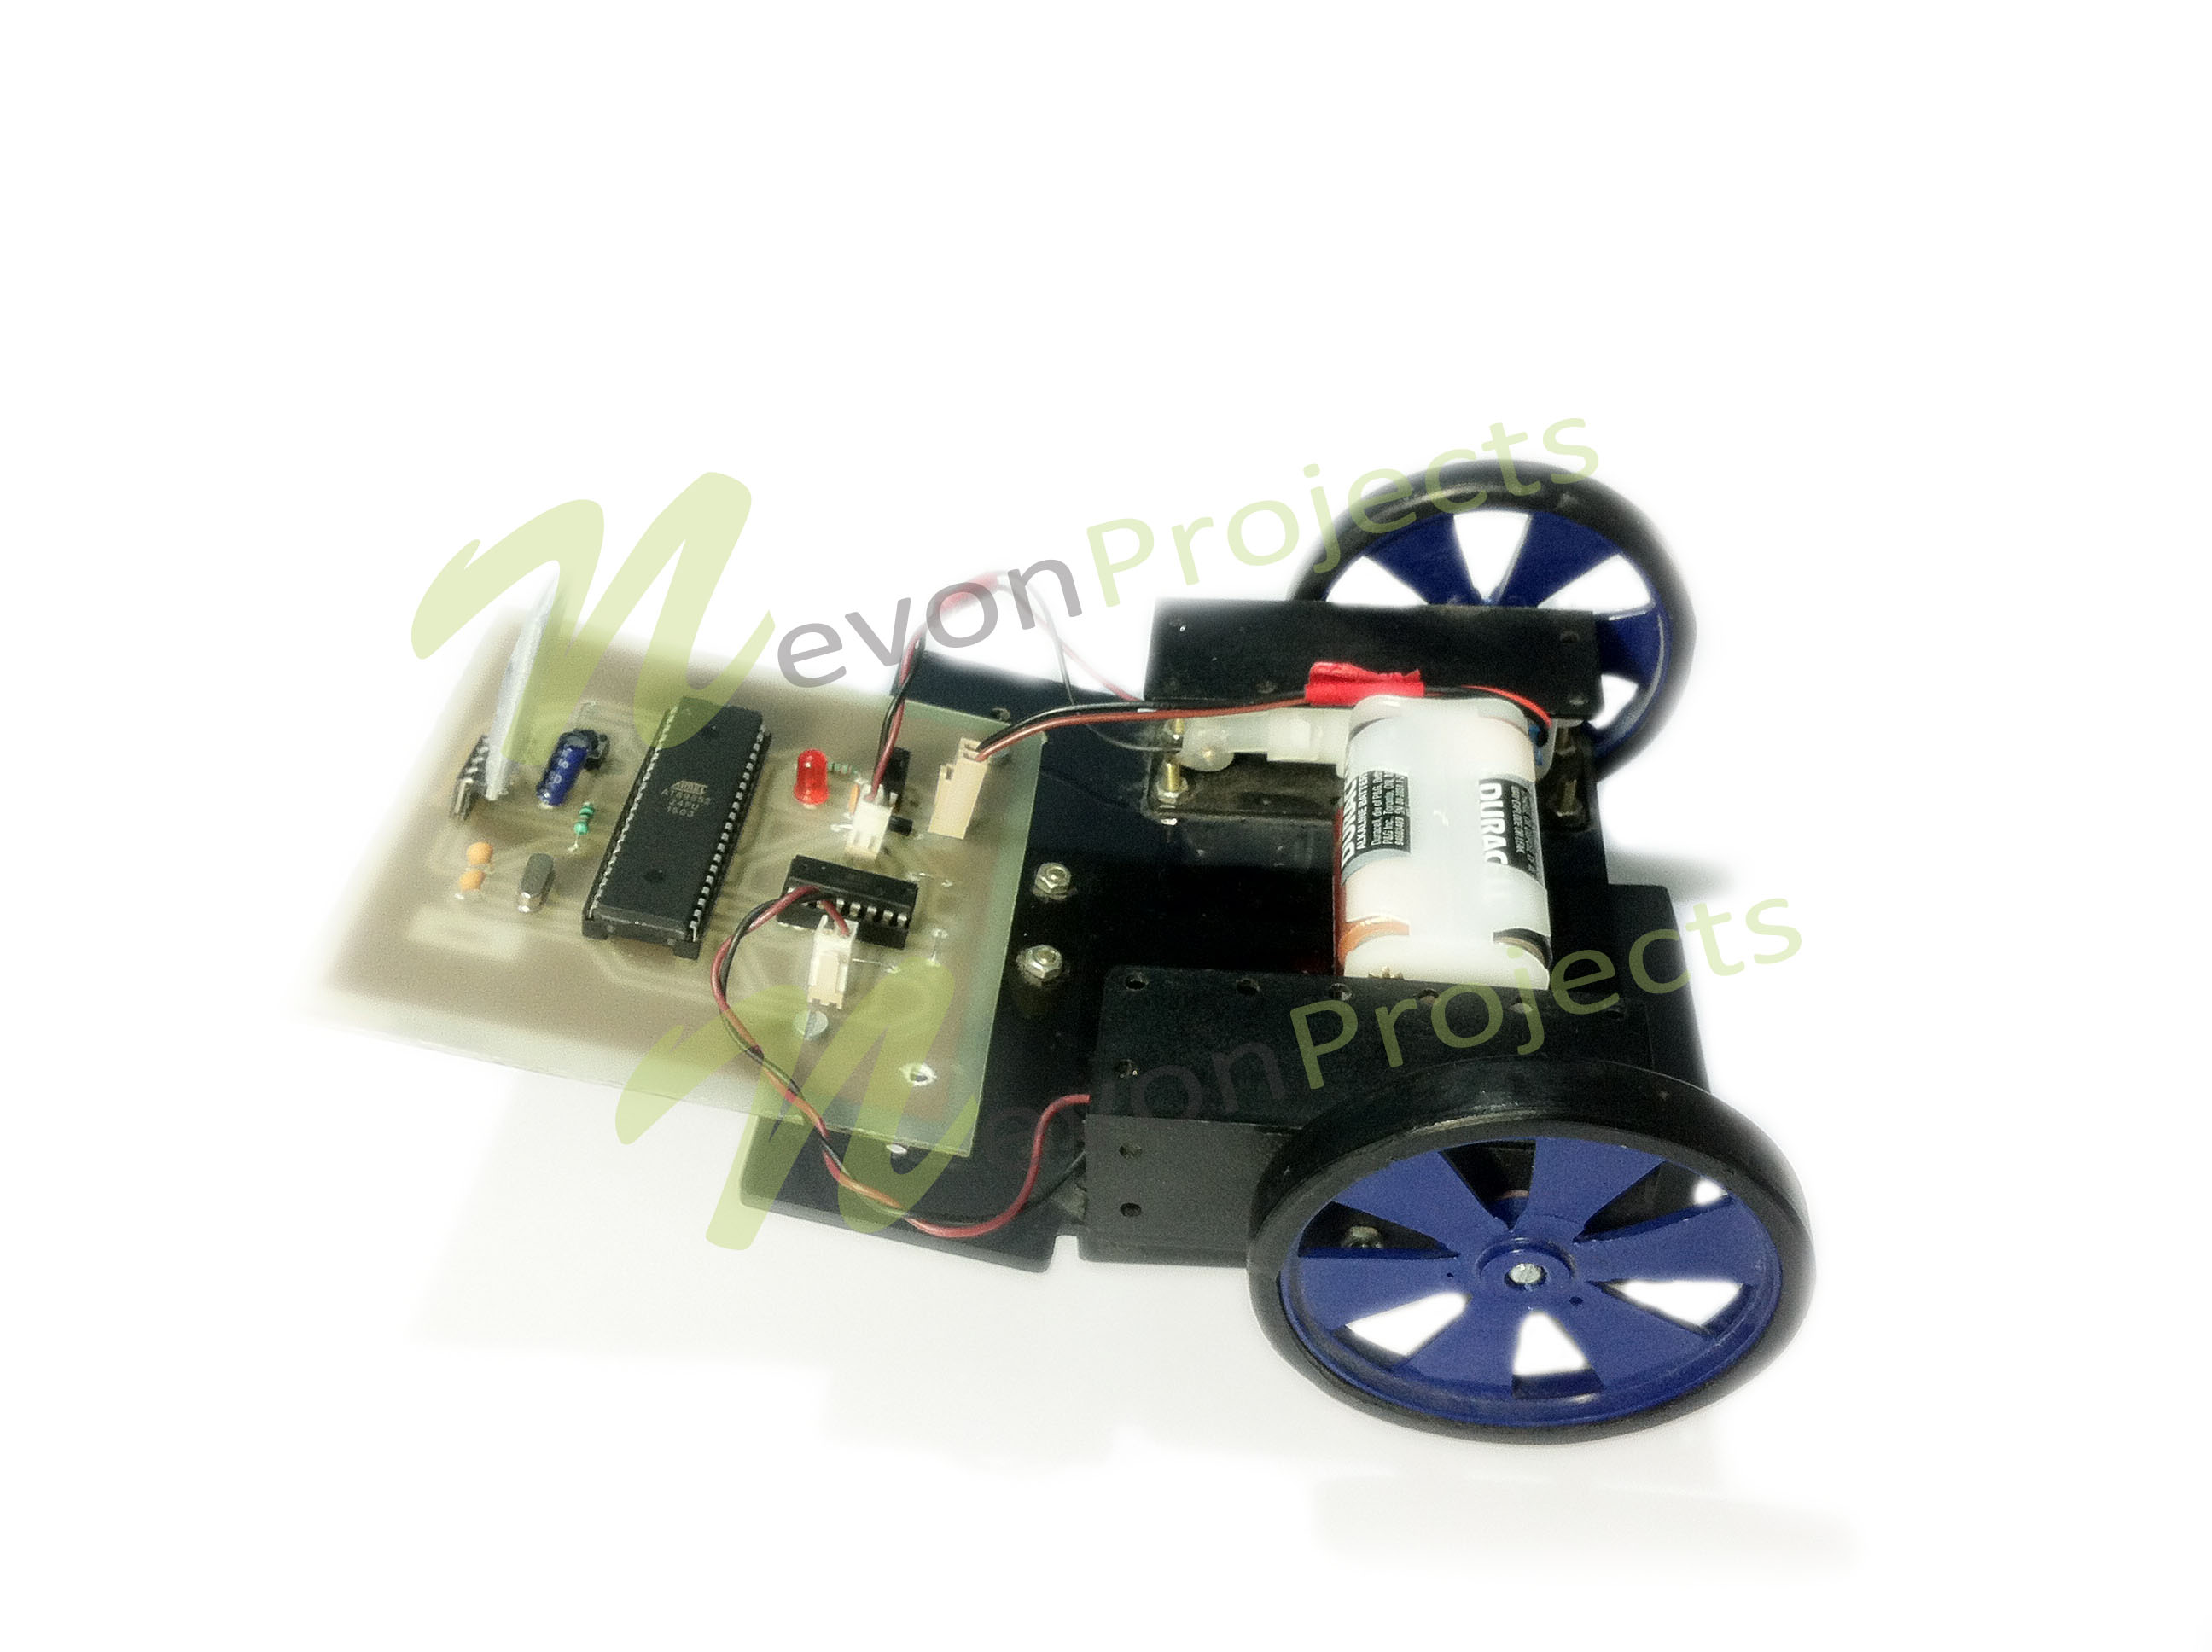 Voice Controlled Robotic Vehicle Project Nevonprojects Toy Remote Control Car Circuit